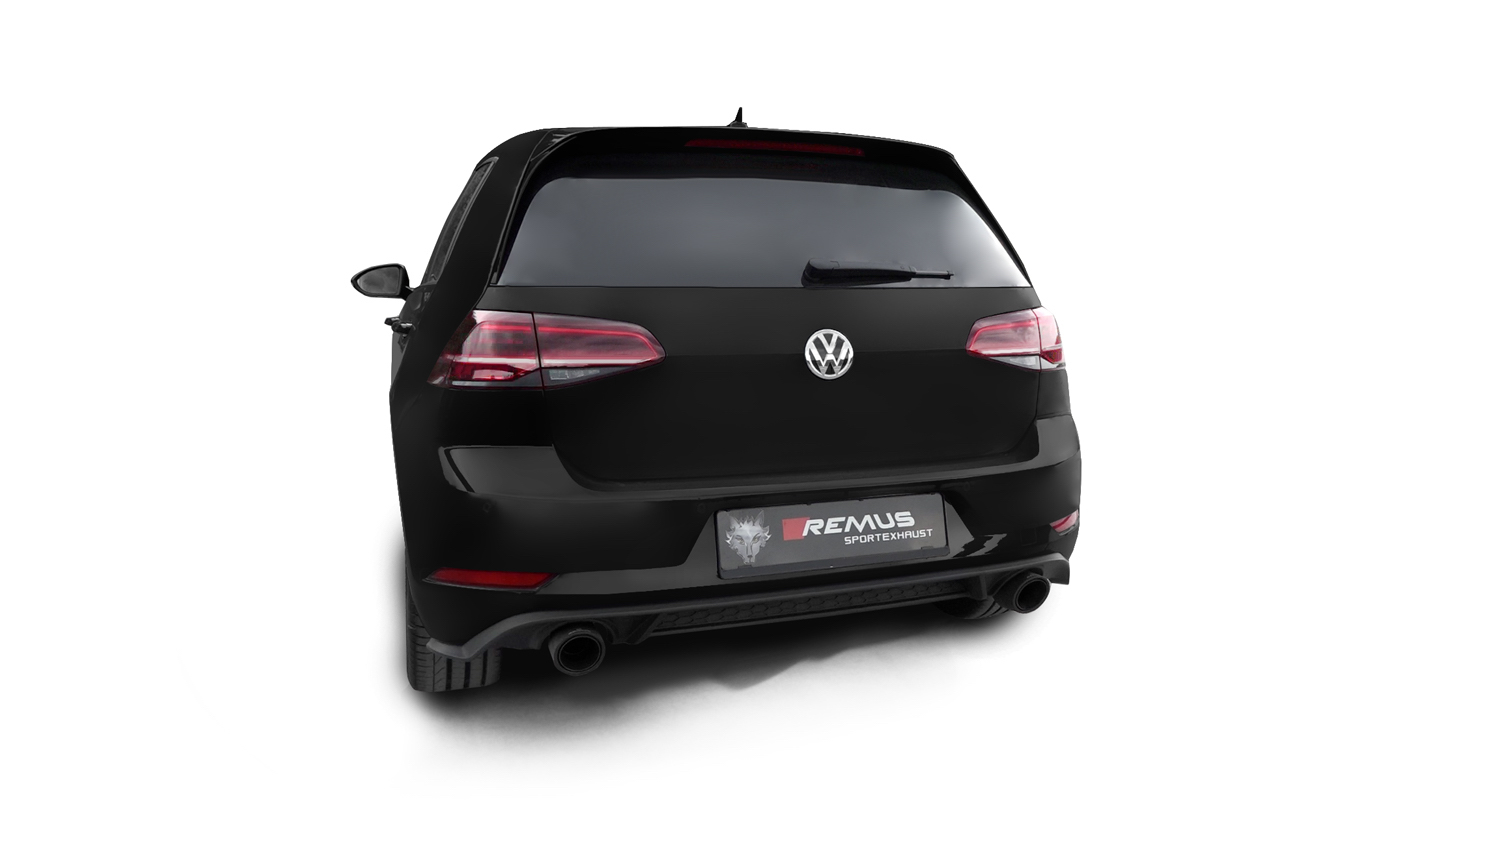 remus news remus product information 10 2017 vw golf vii. Black Bedroom Furniture Sets. Home Design Ideas